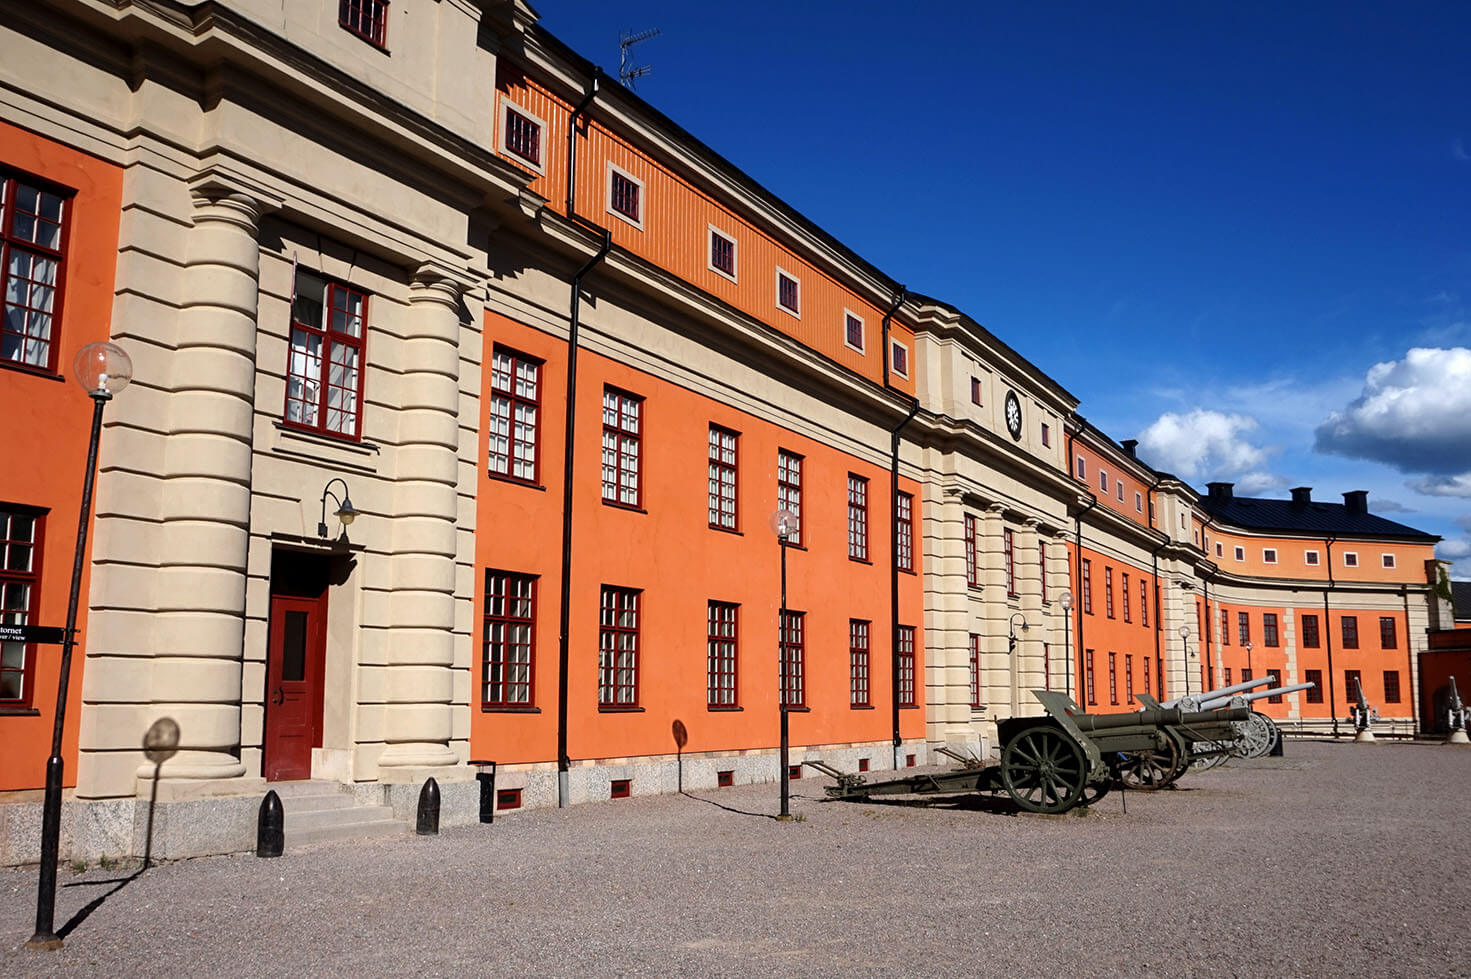 Vaxholm fortress museum